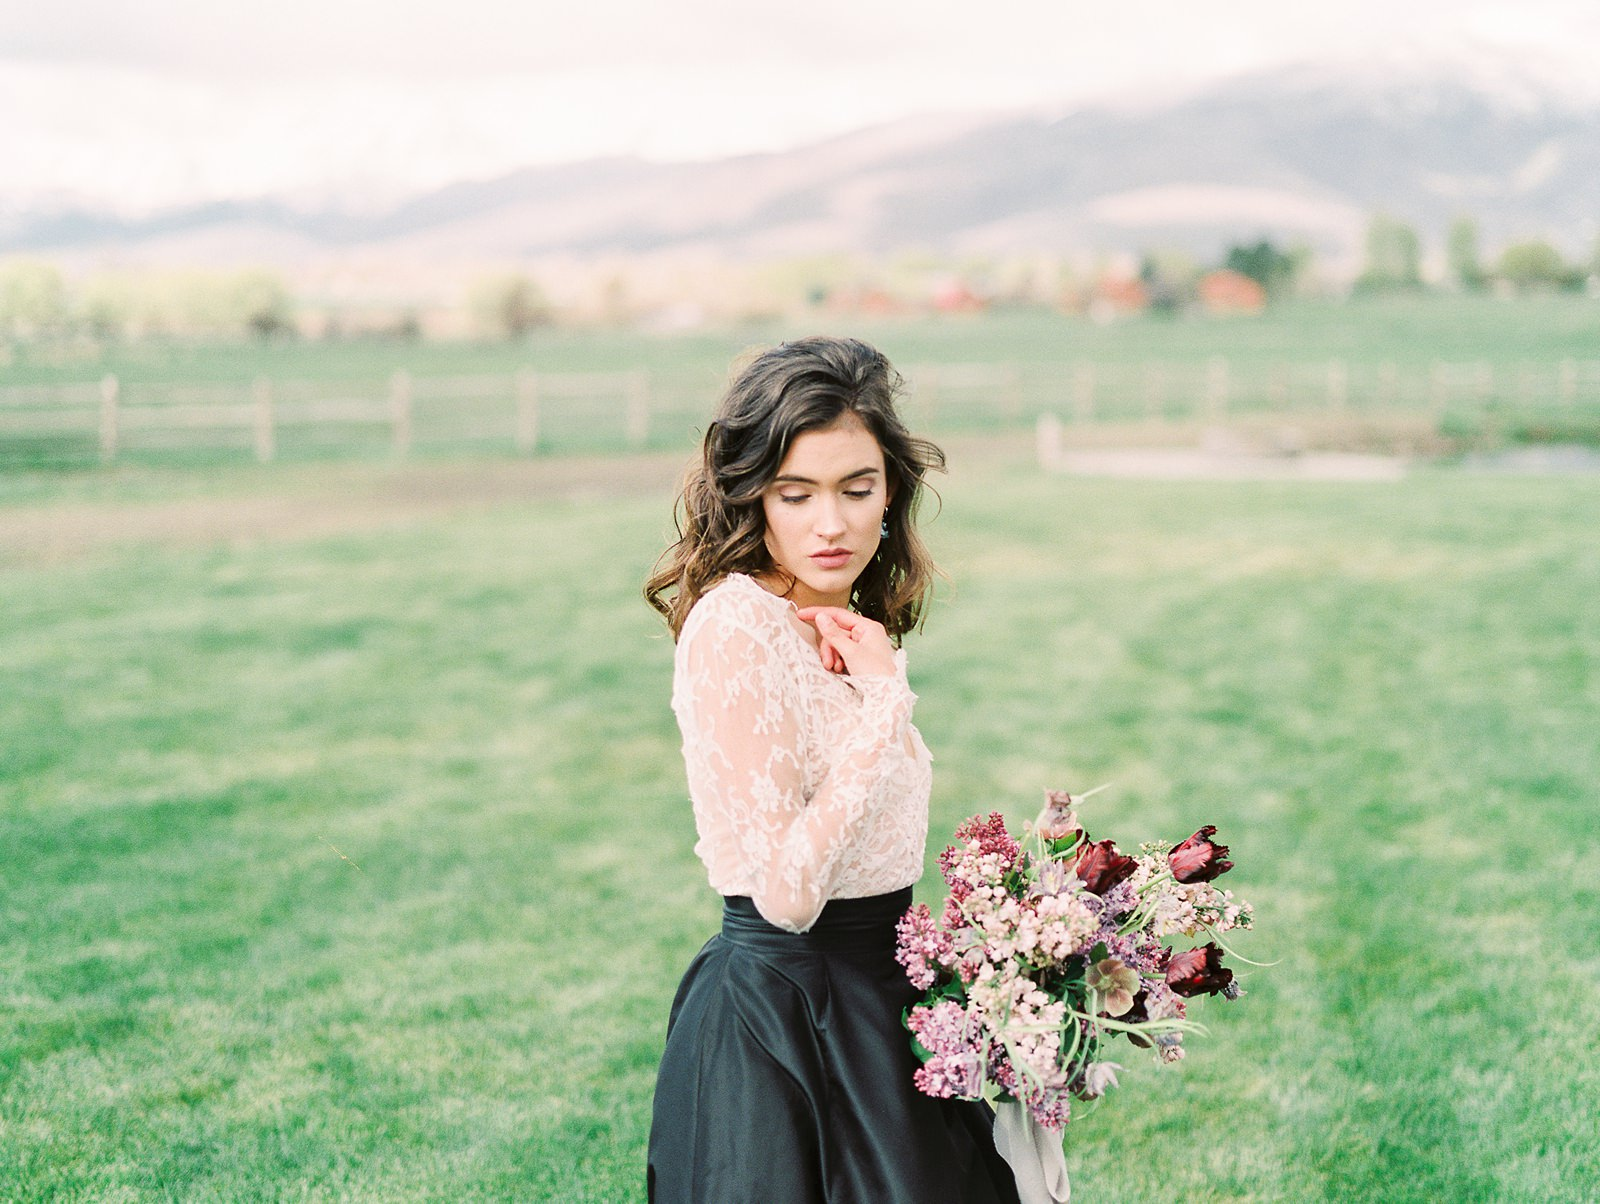 Heber Valley Natural Organic Wedding Inspiration at River Bottoms Ranch, Utah wedding venue film photography, bride with lace long sleeve top with black taffeta maxi skirt bridal separates, lilac purple wedding flowers bouquet, green field location